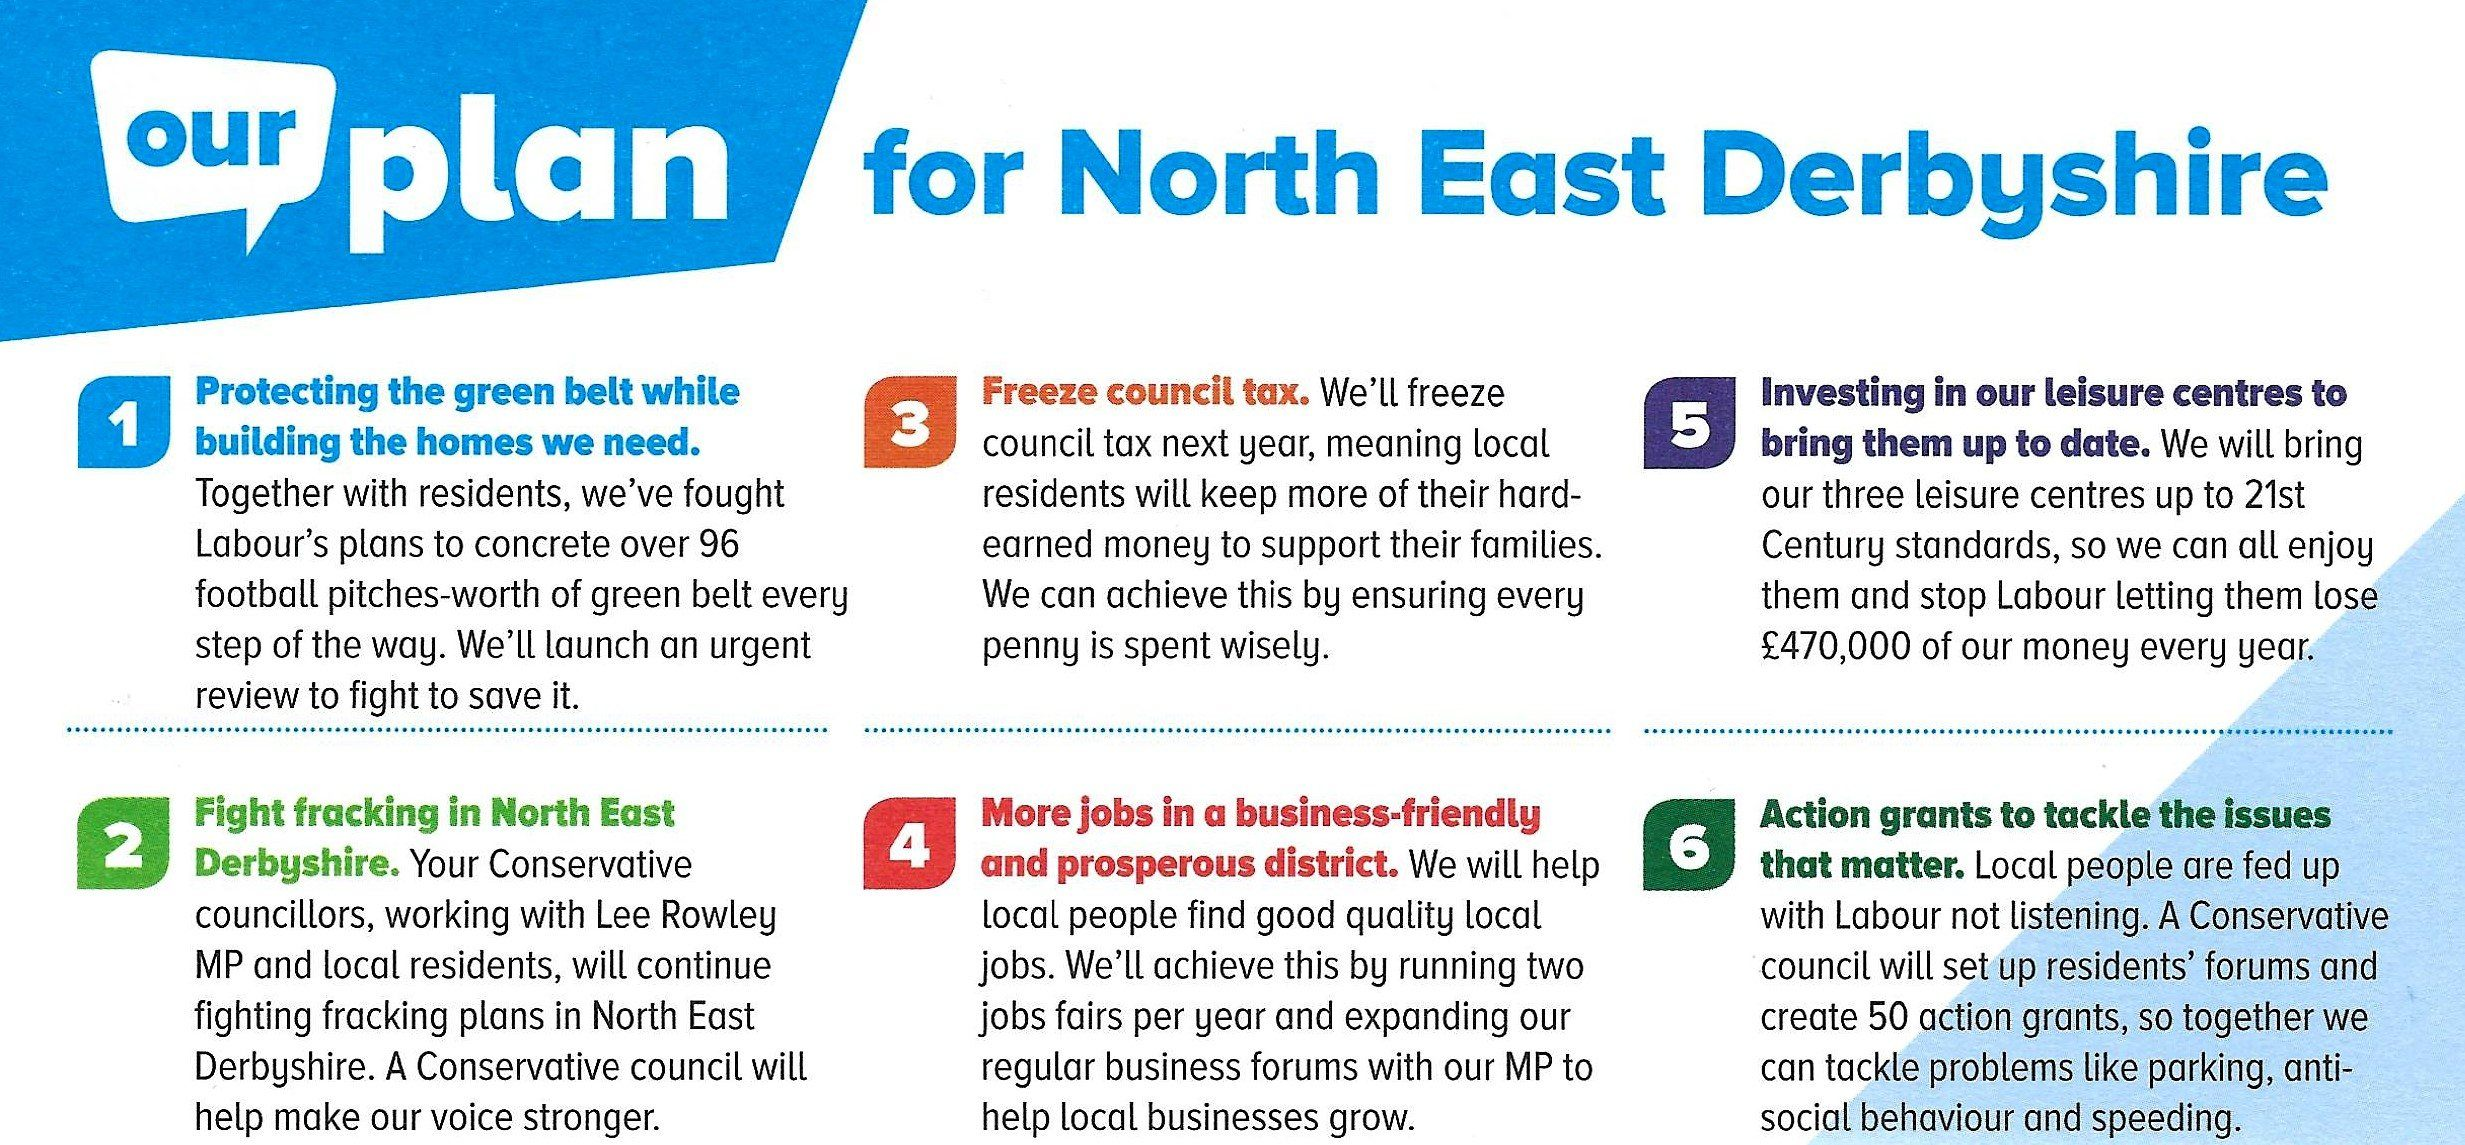 Our Plan for North East Derbyshire